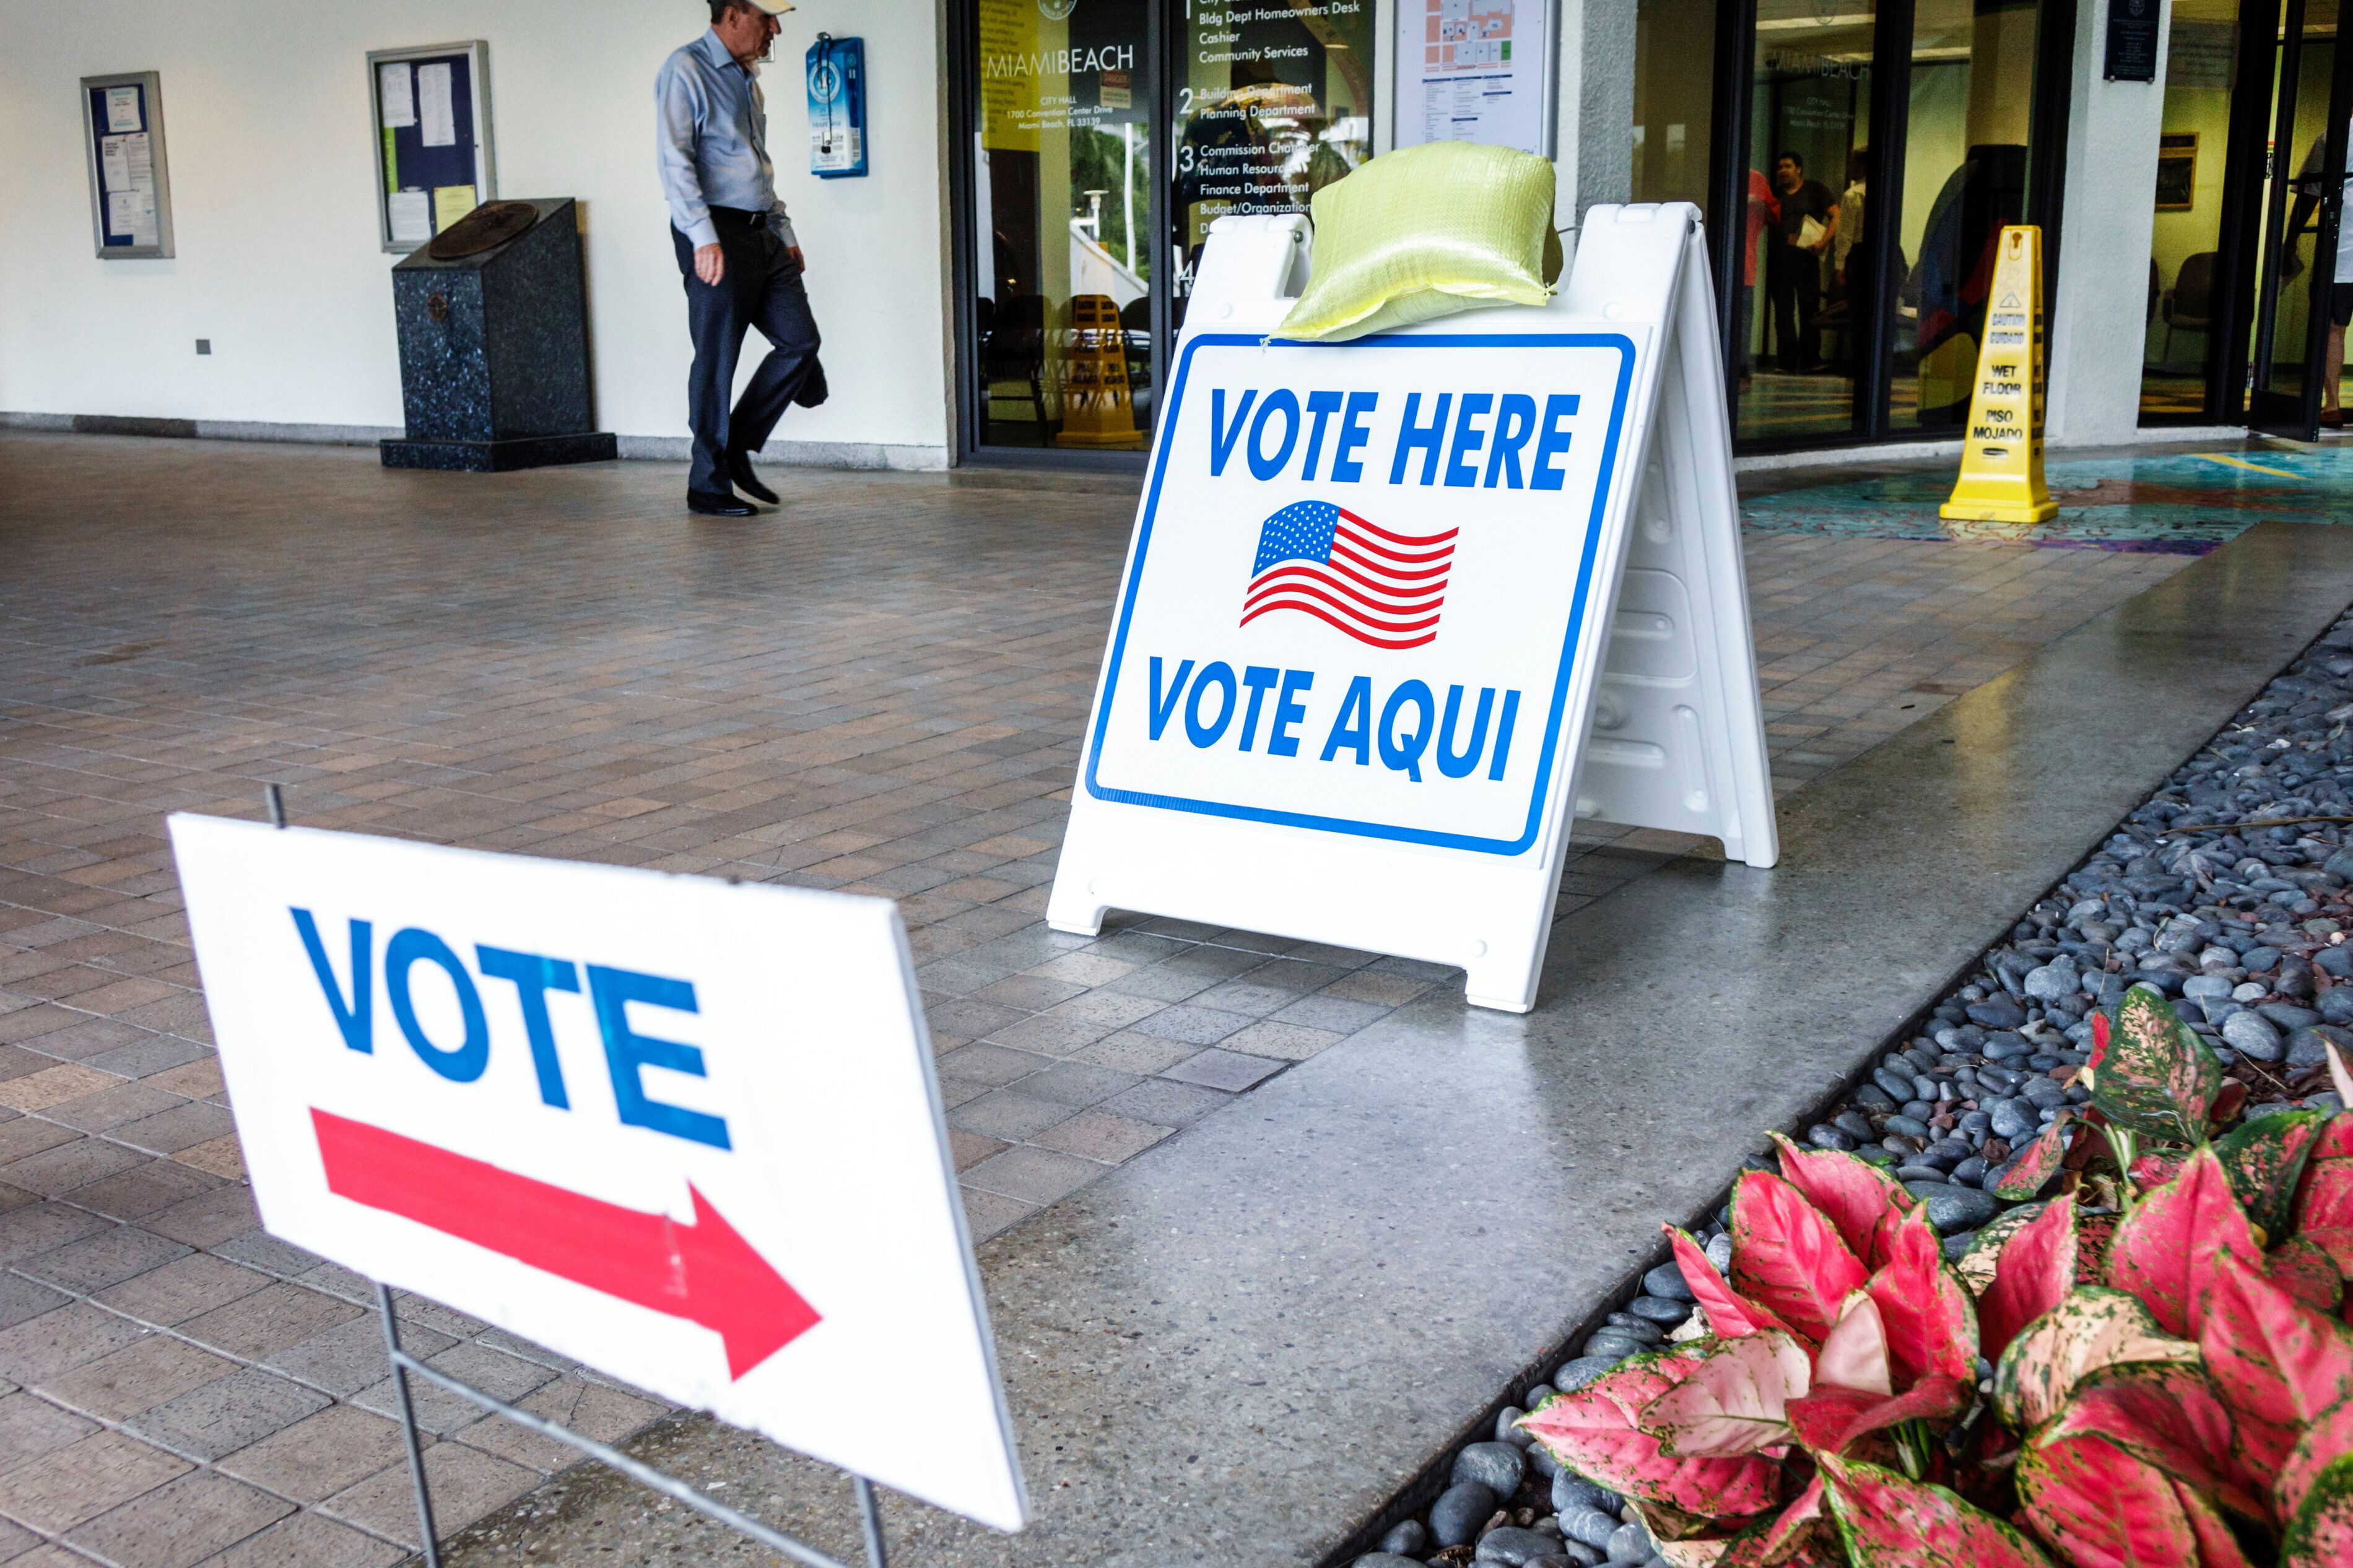 Judge Requires Florida Counties To Provide Spanish-Language Ballots In